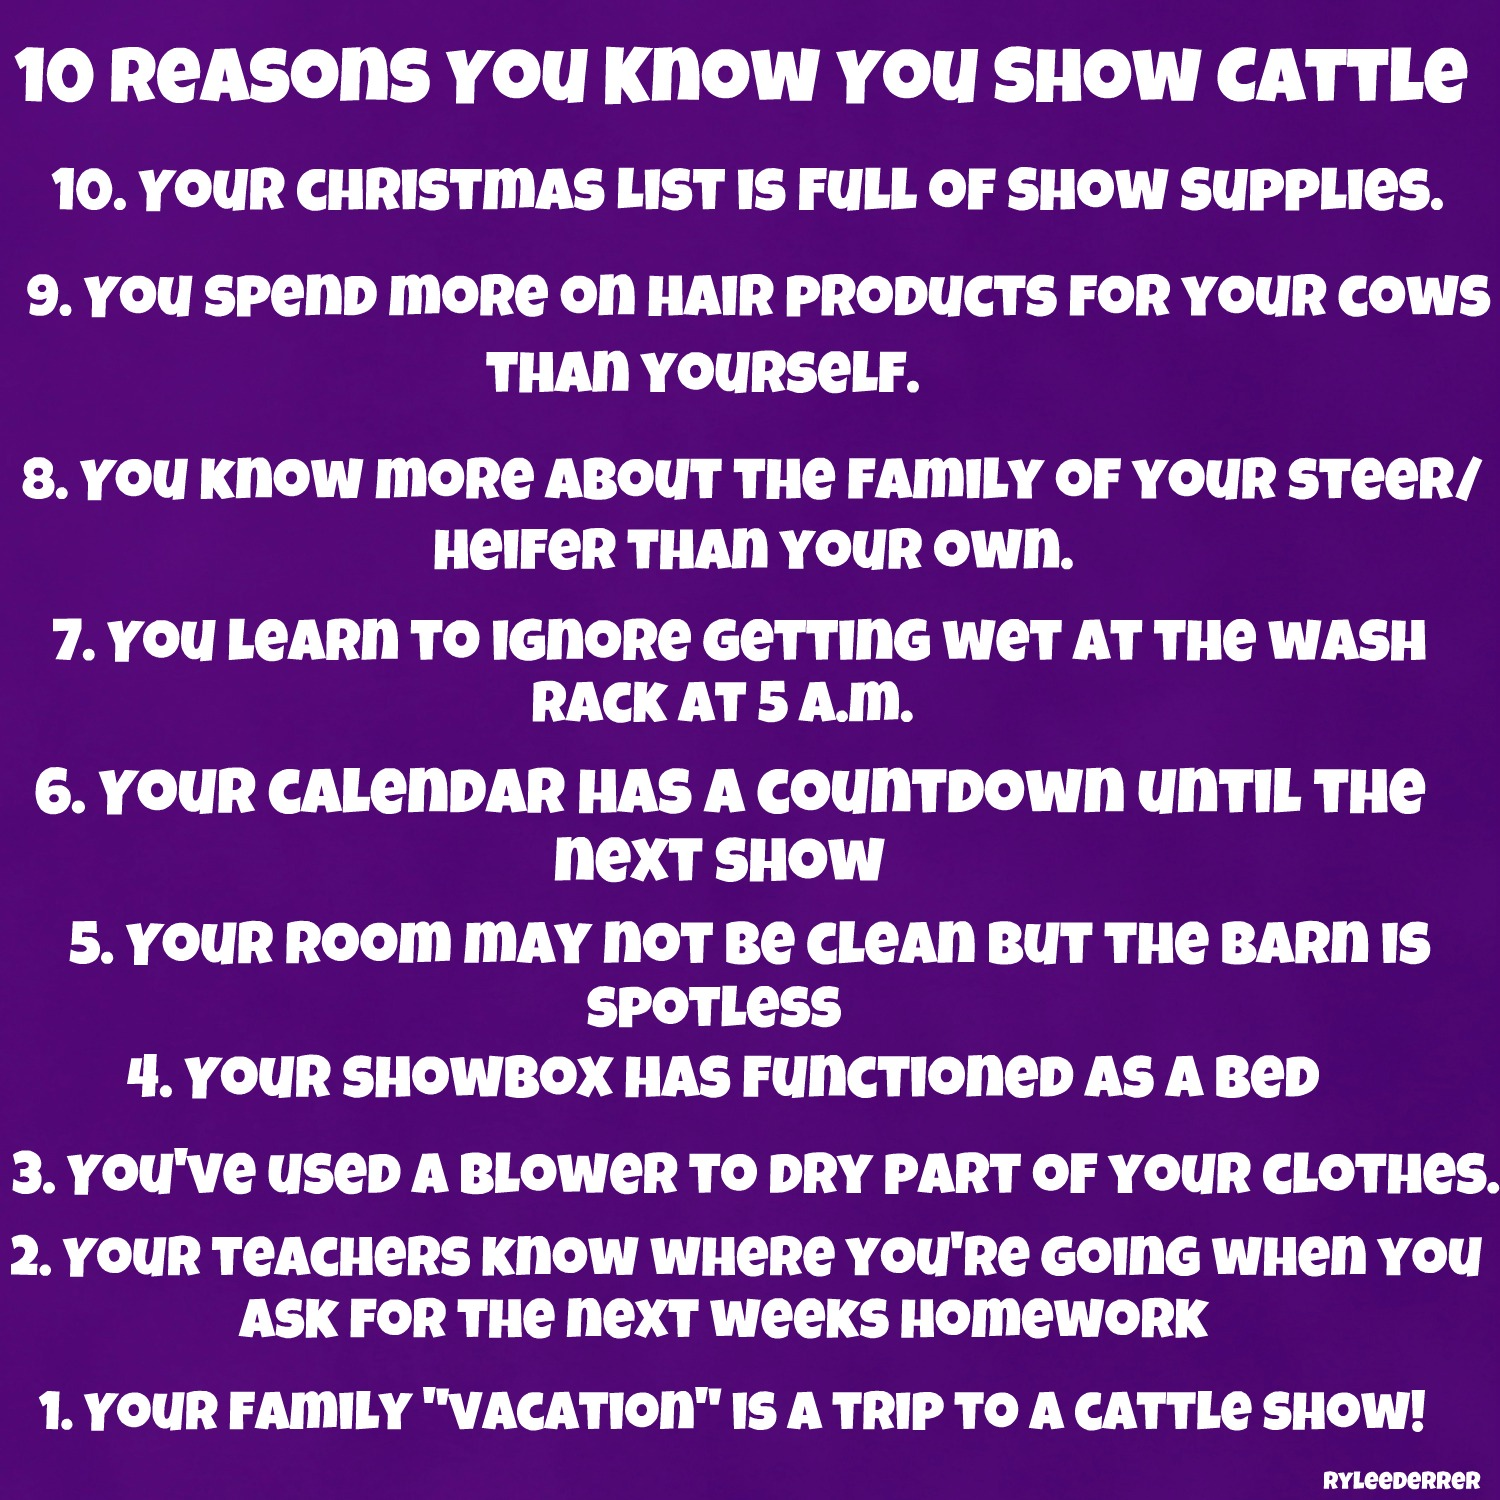 4 h show cattle guide